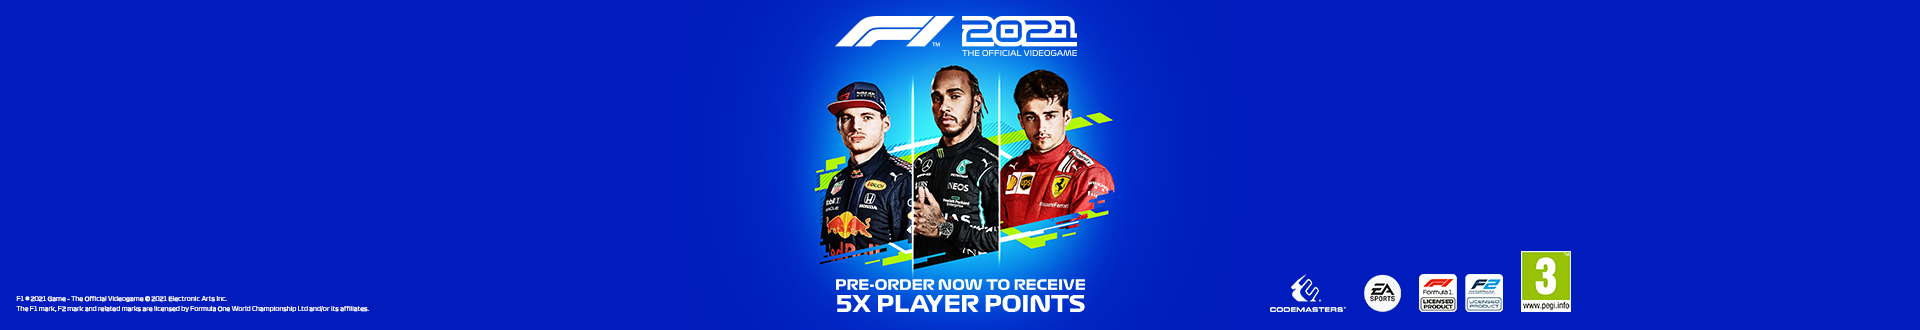 Get 5x Player Points with your F1 2021 pre-order!